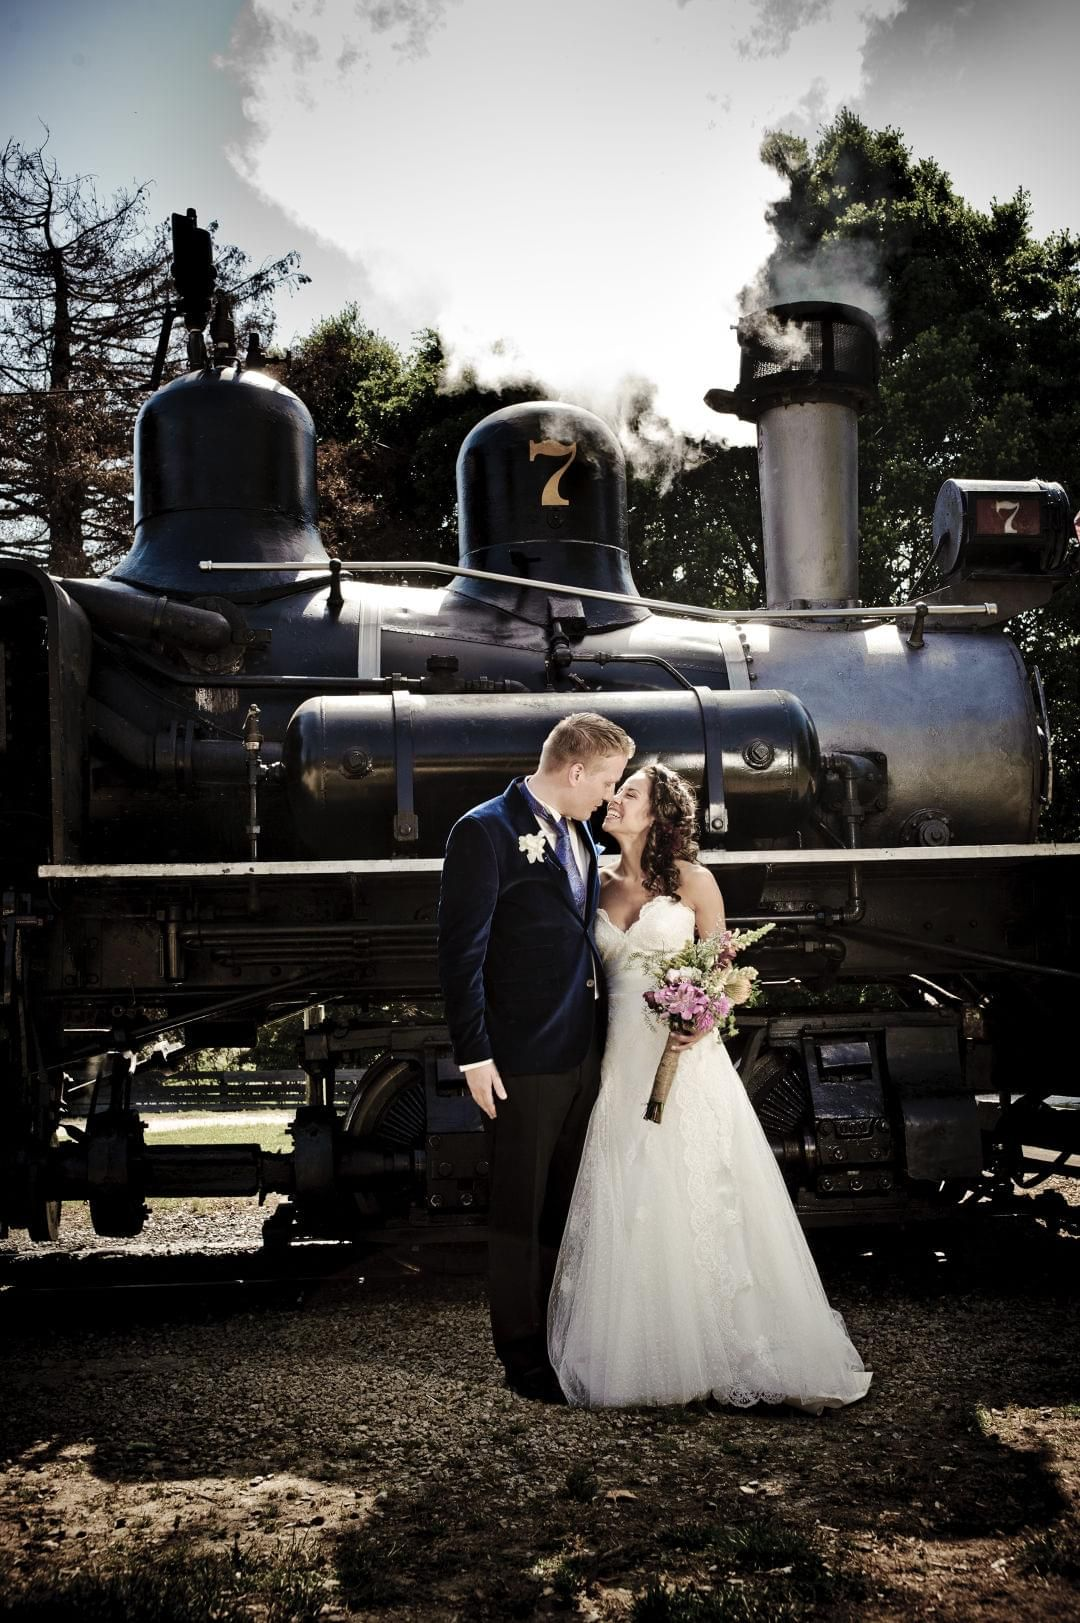 Get Inspired By This California Wedding In The Redwoods Discover Vendors Responsible For